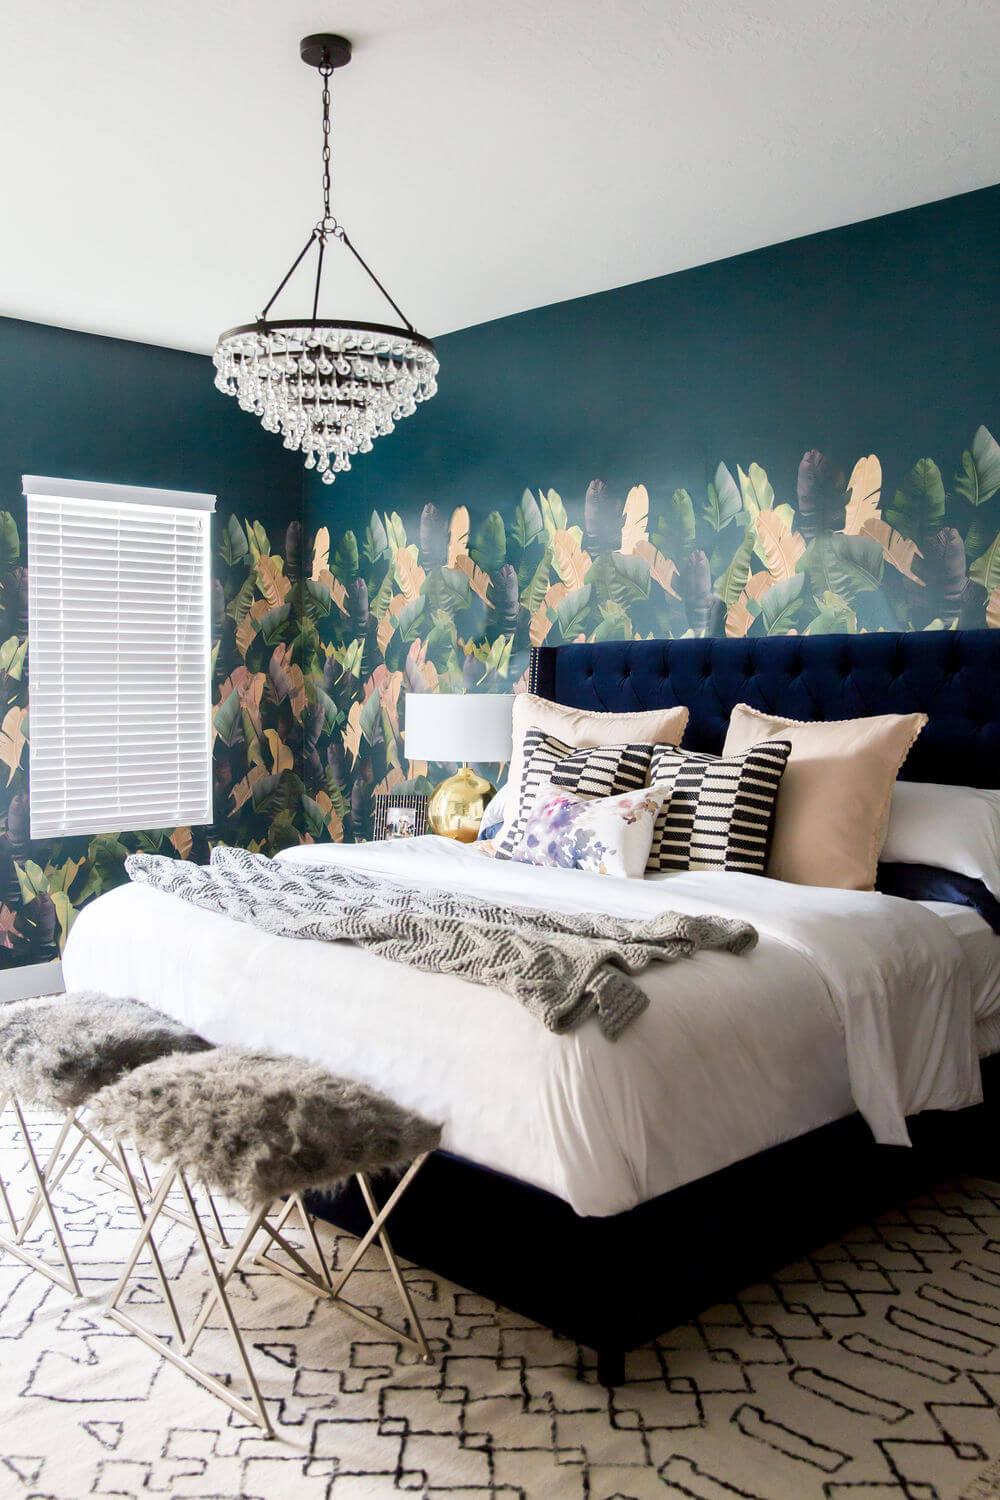 22 Best Bedroom Accent Wall Design Ideas to Update Your ...